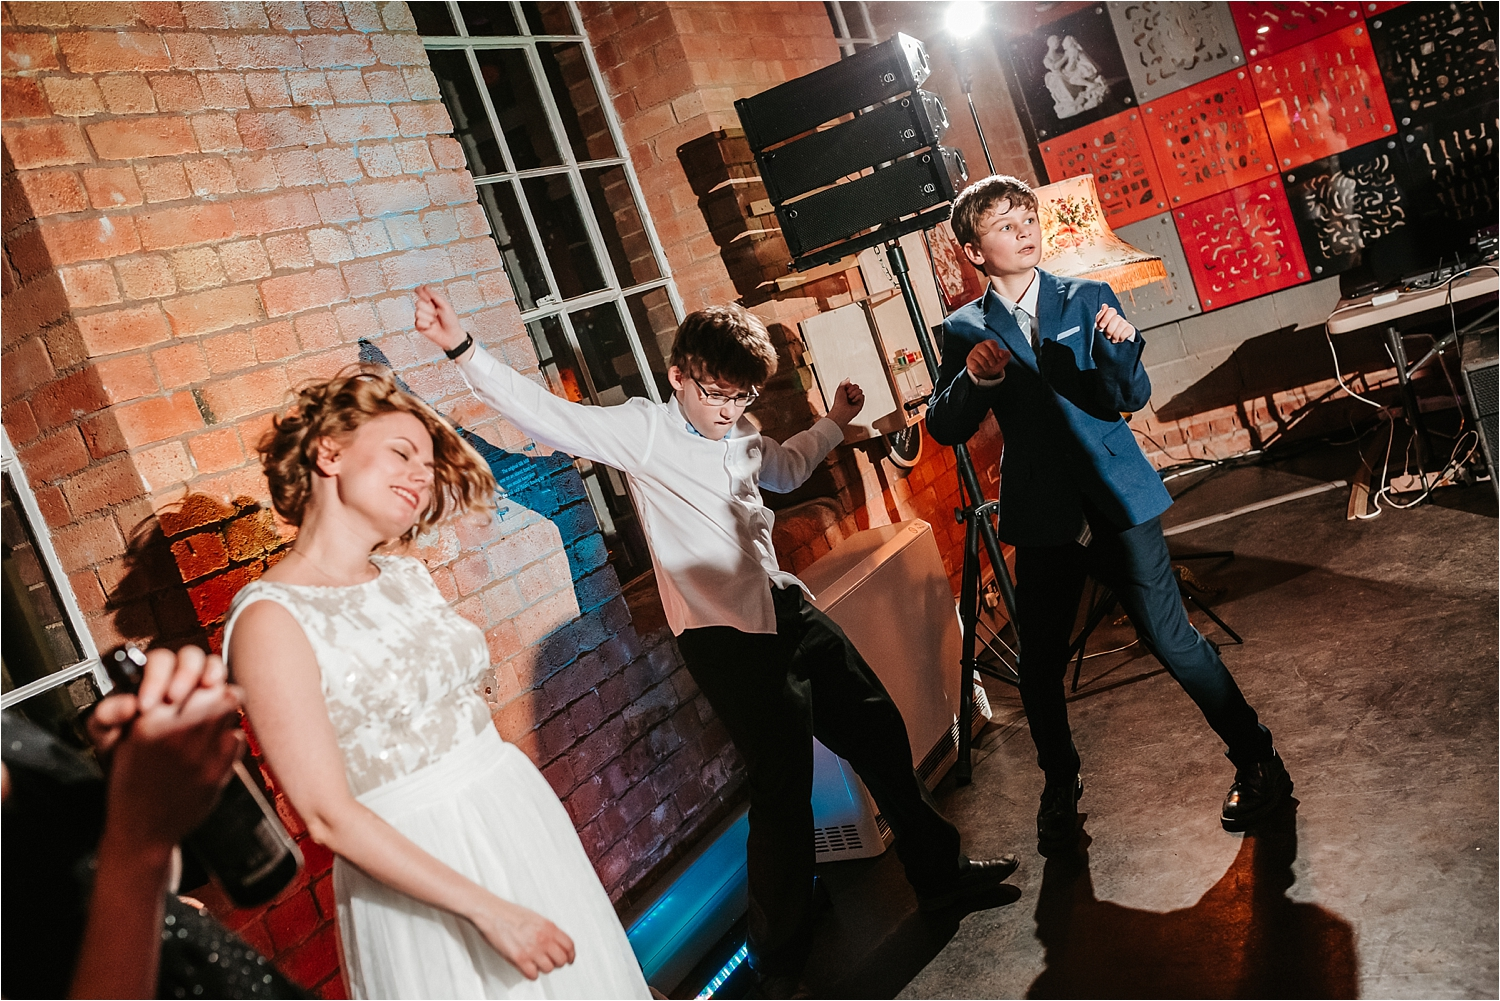 Victoria-Ben-The-West-Mill-darley-abbey-natural-relaxed-documentary-wedding-photography-photographer-Derby-Nottingham-Derbyshire-Nottinghamshire-Leicestershire-Lincolnshire-East-Midlands_0183.jpg